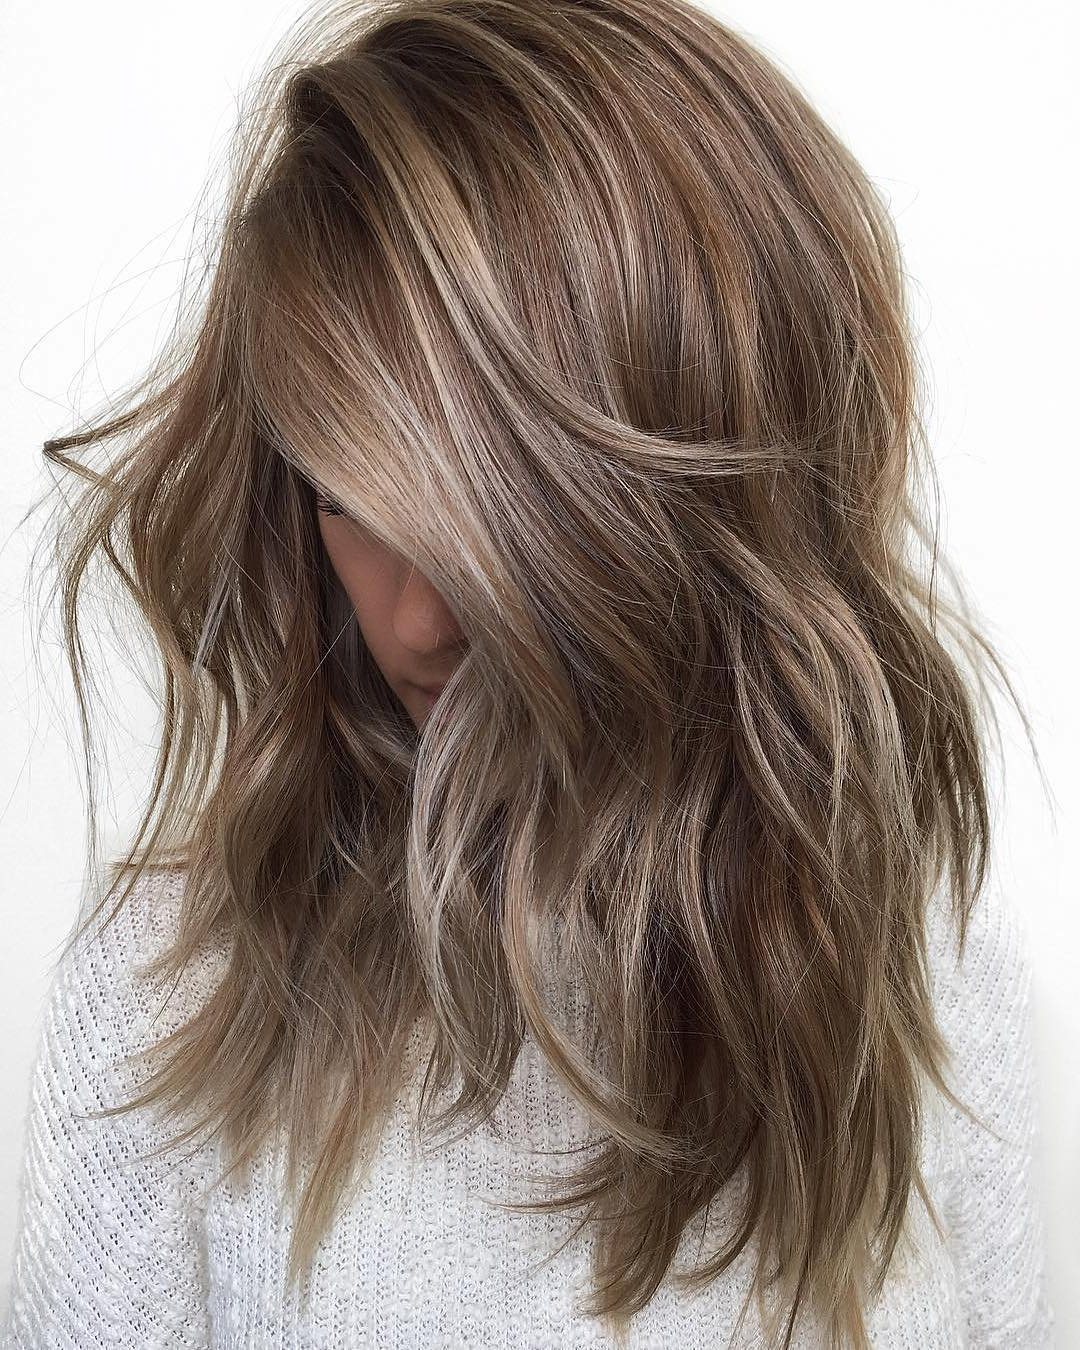 10 Balayage Ombre Hair Styles For Shoulder Length Hair, Women In Widely Used Medium Hairstyles With Balayage (View 2 of 20)